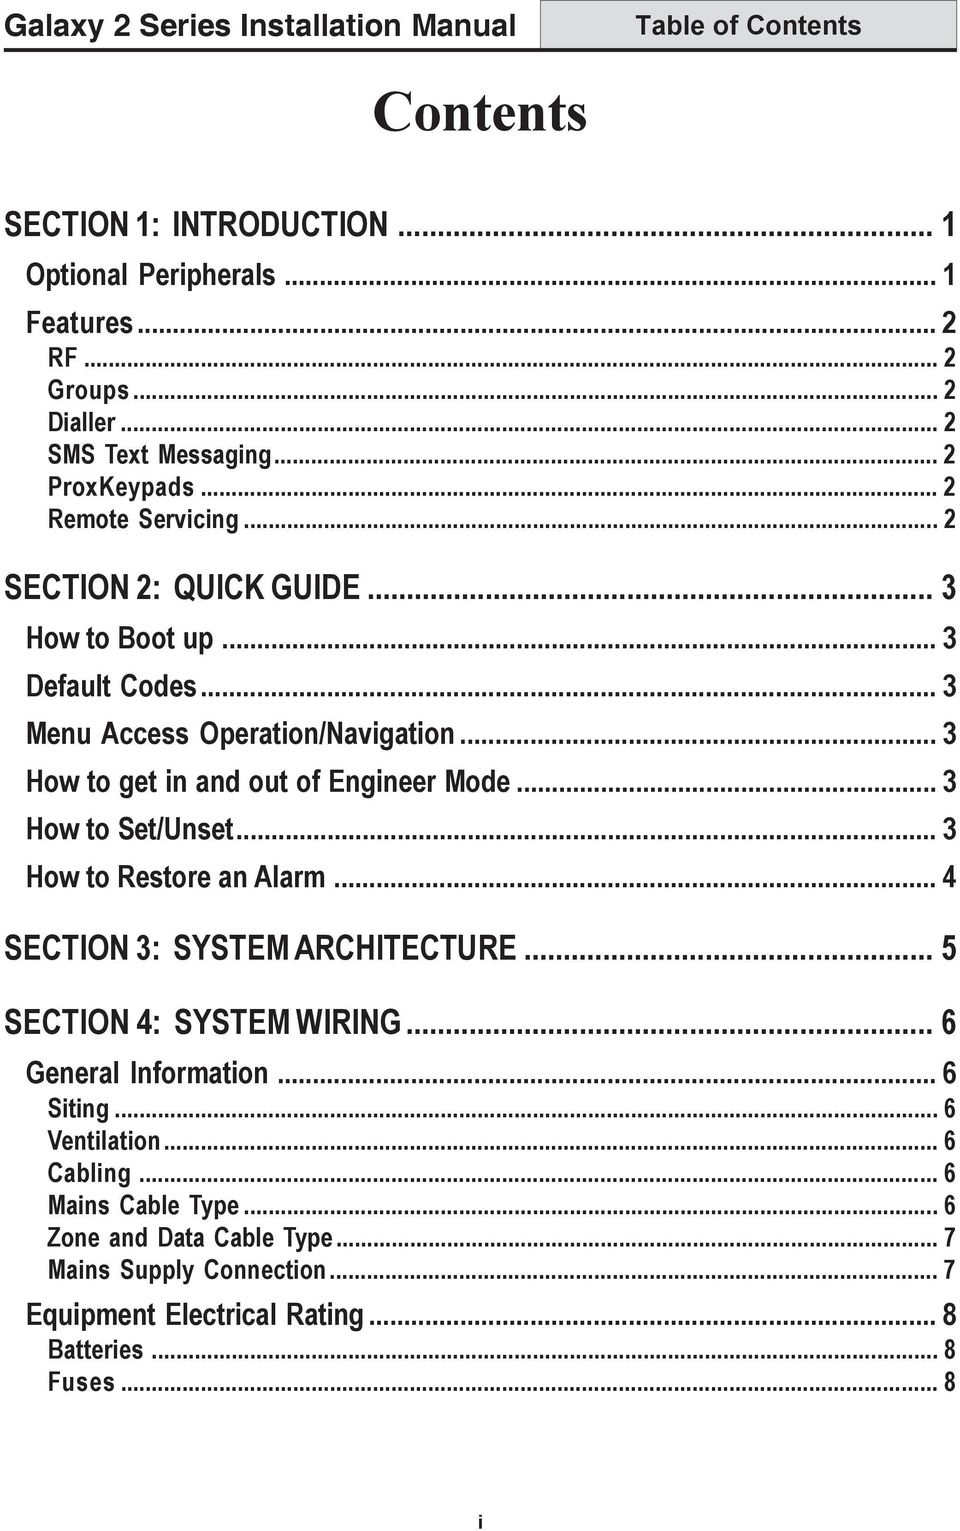 hight resolution of 3 how to get in and out of engineer mode 3 4 table of contents galaxy 2 series installation manual